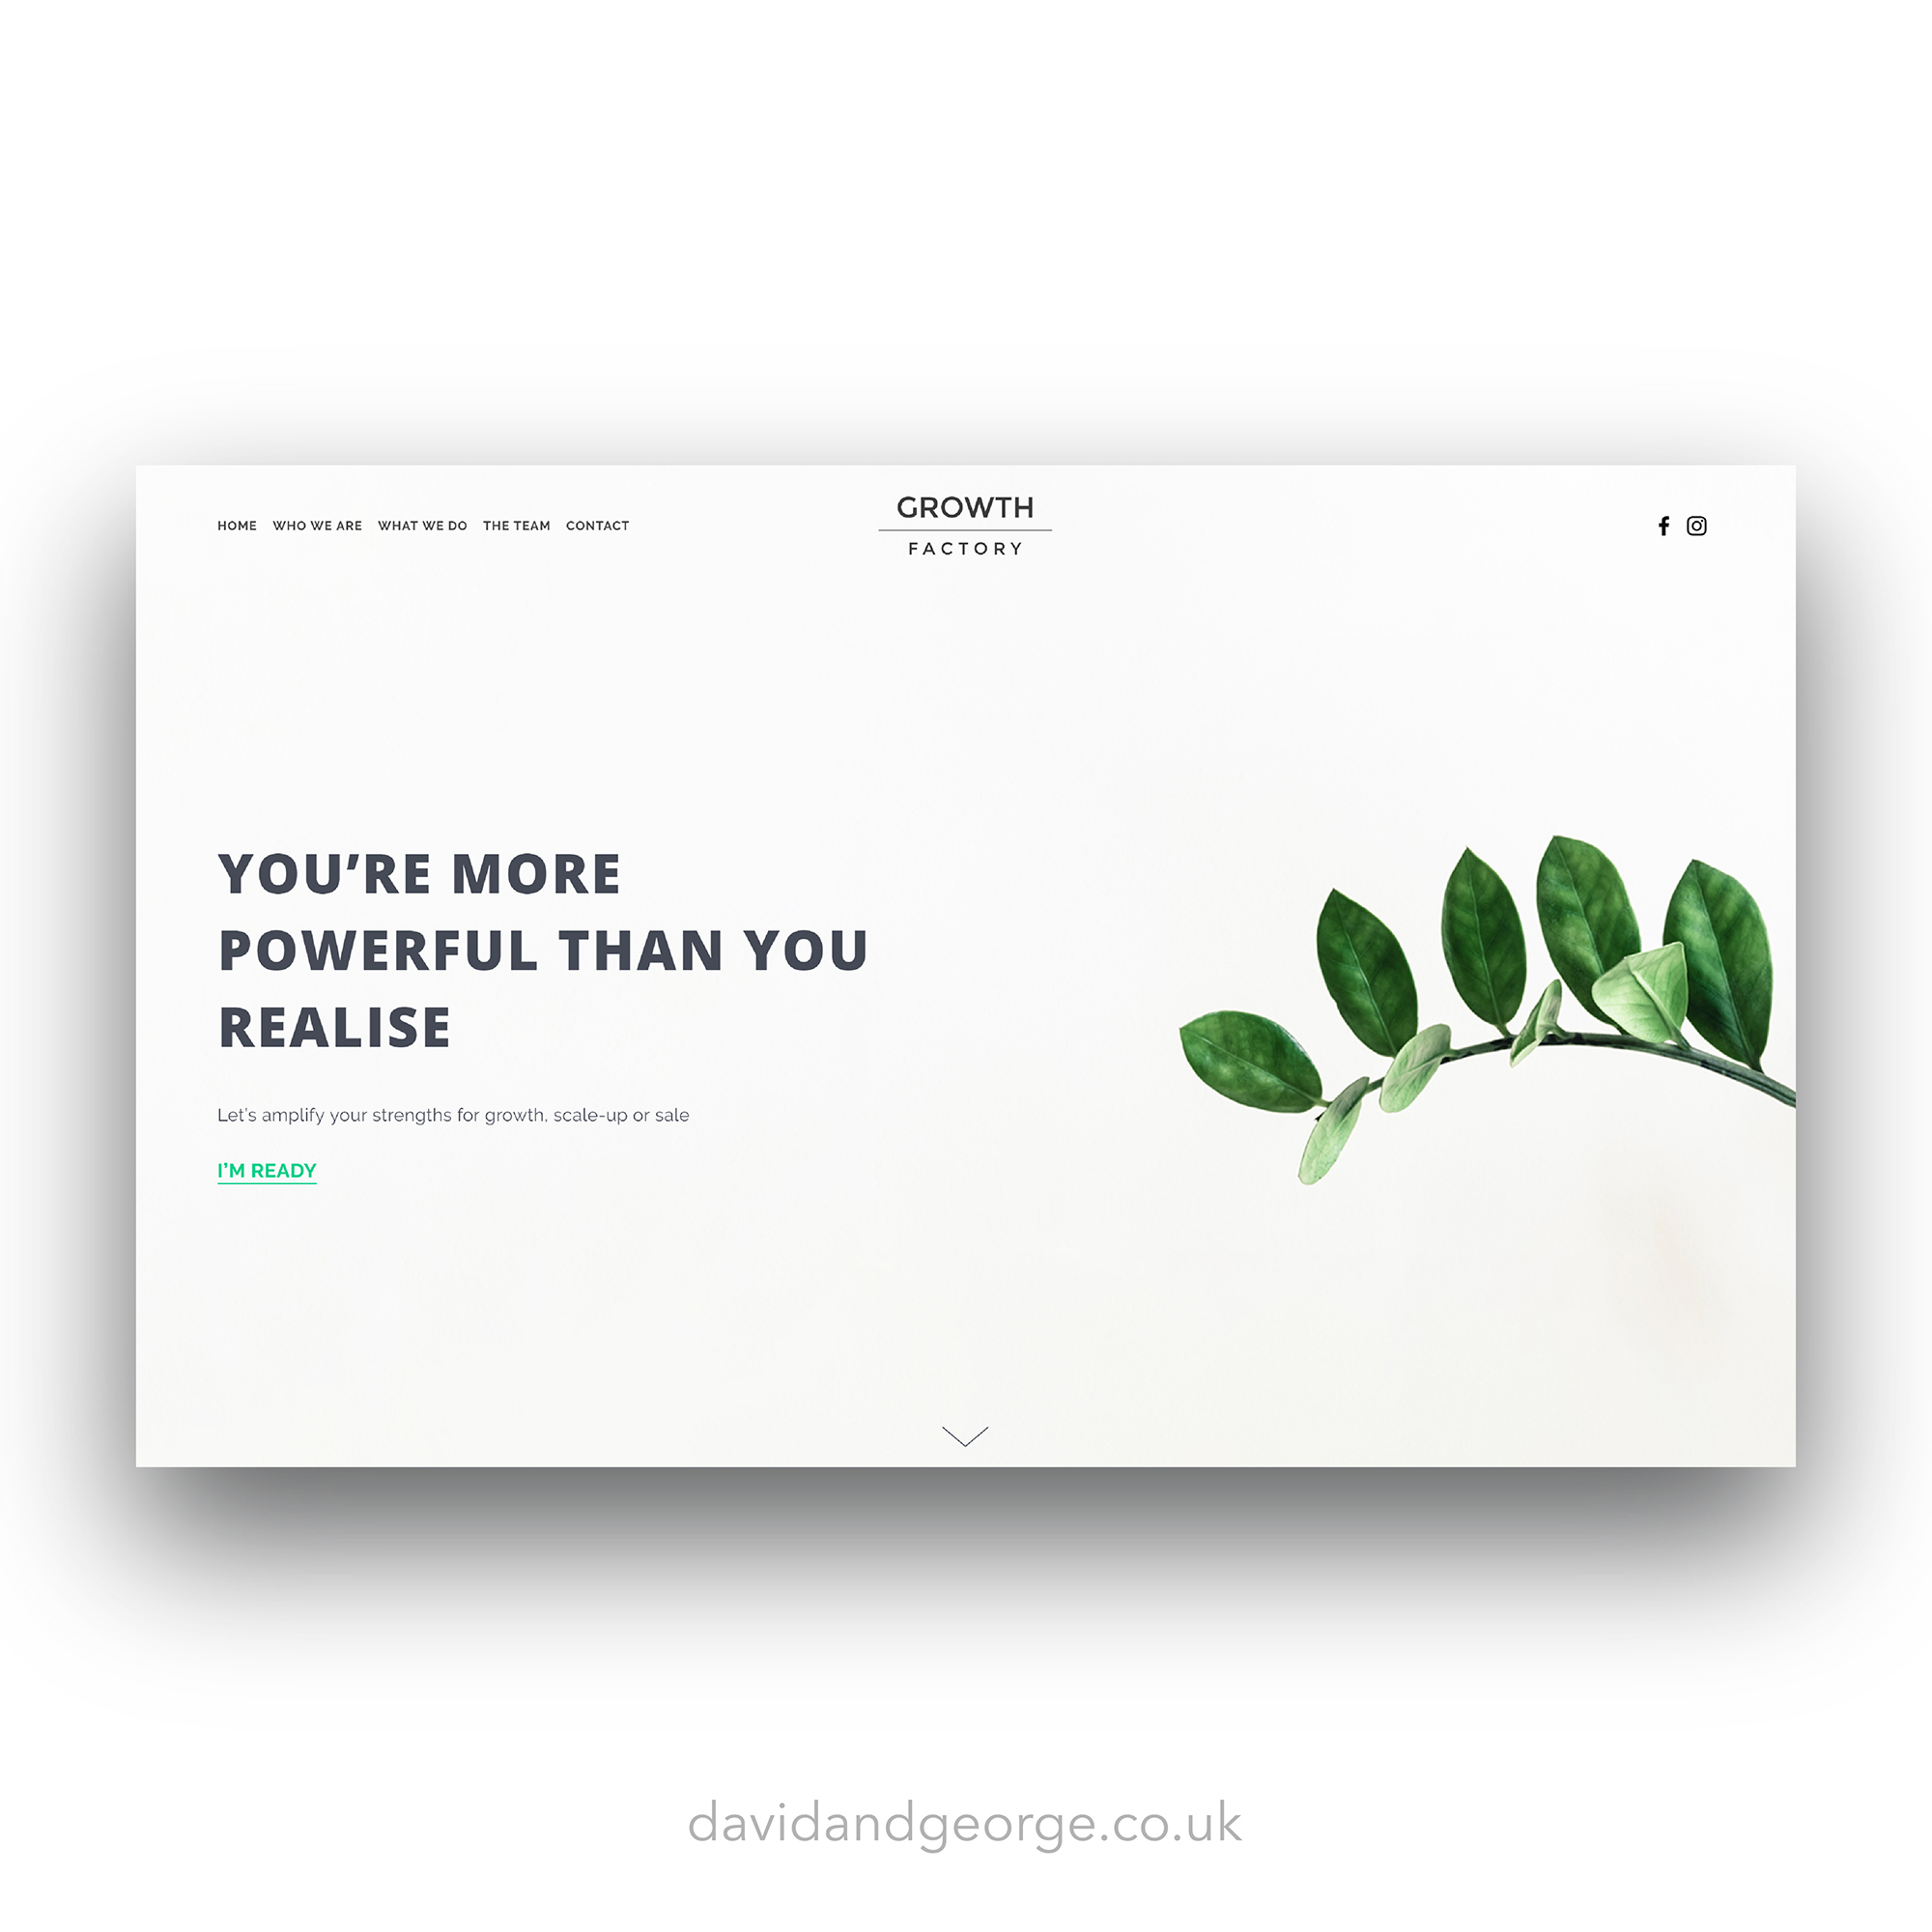 squarespace-website-design-london-edinburgh-uk-david-and-george-business-growth-consultancy.jpg